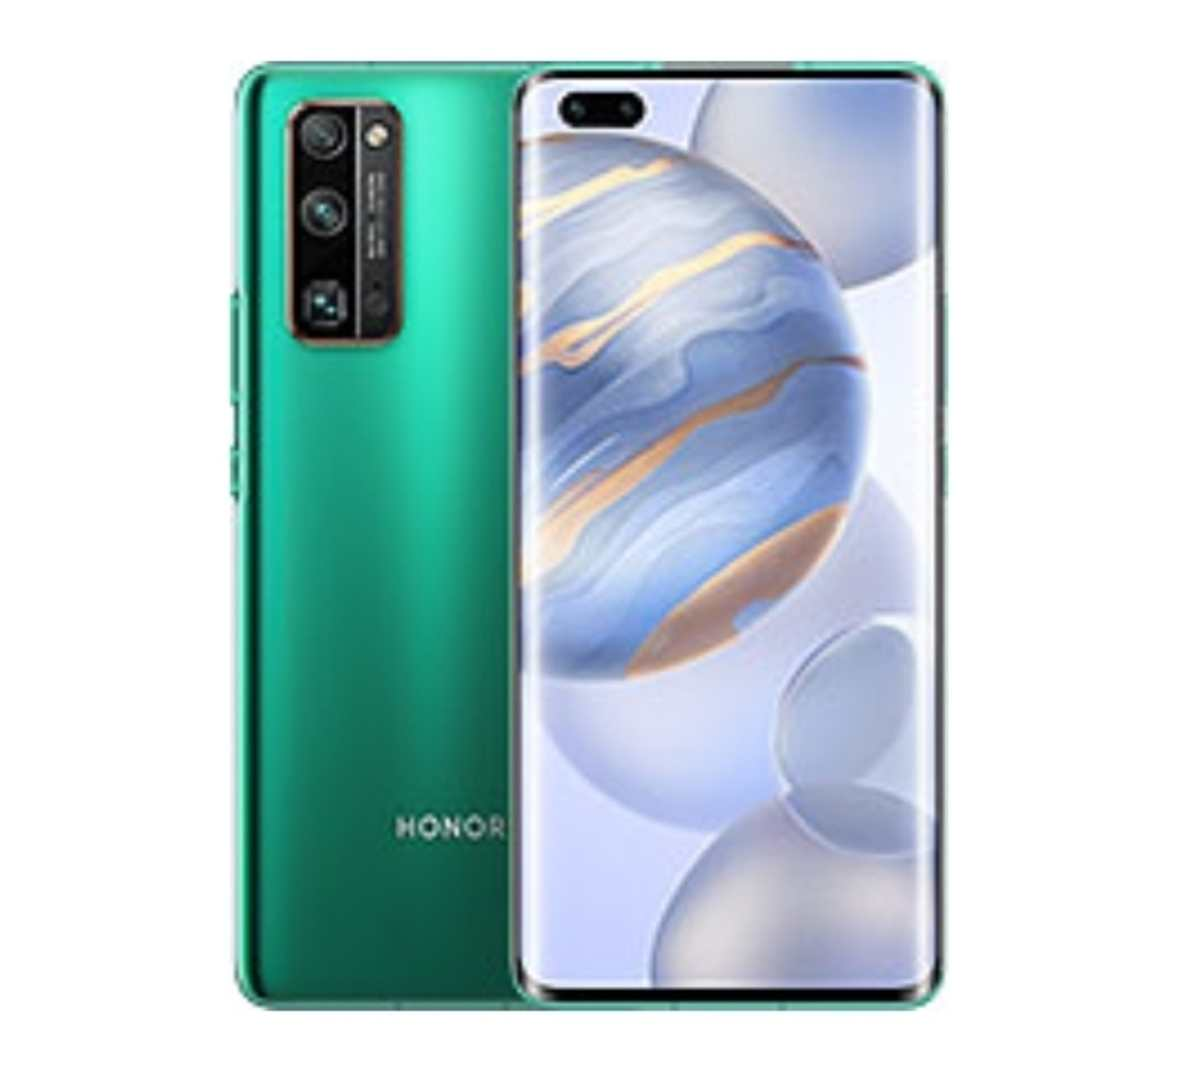 Honor 30 Pro image, specs and price in Nigeria, Honor 30 Pro Price In Nigeria